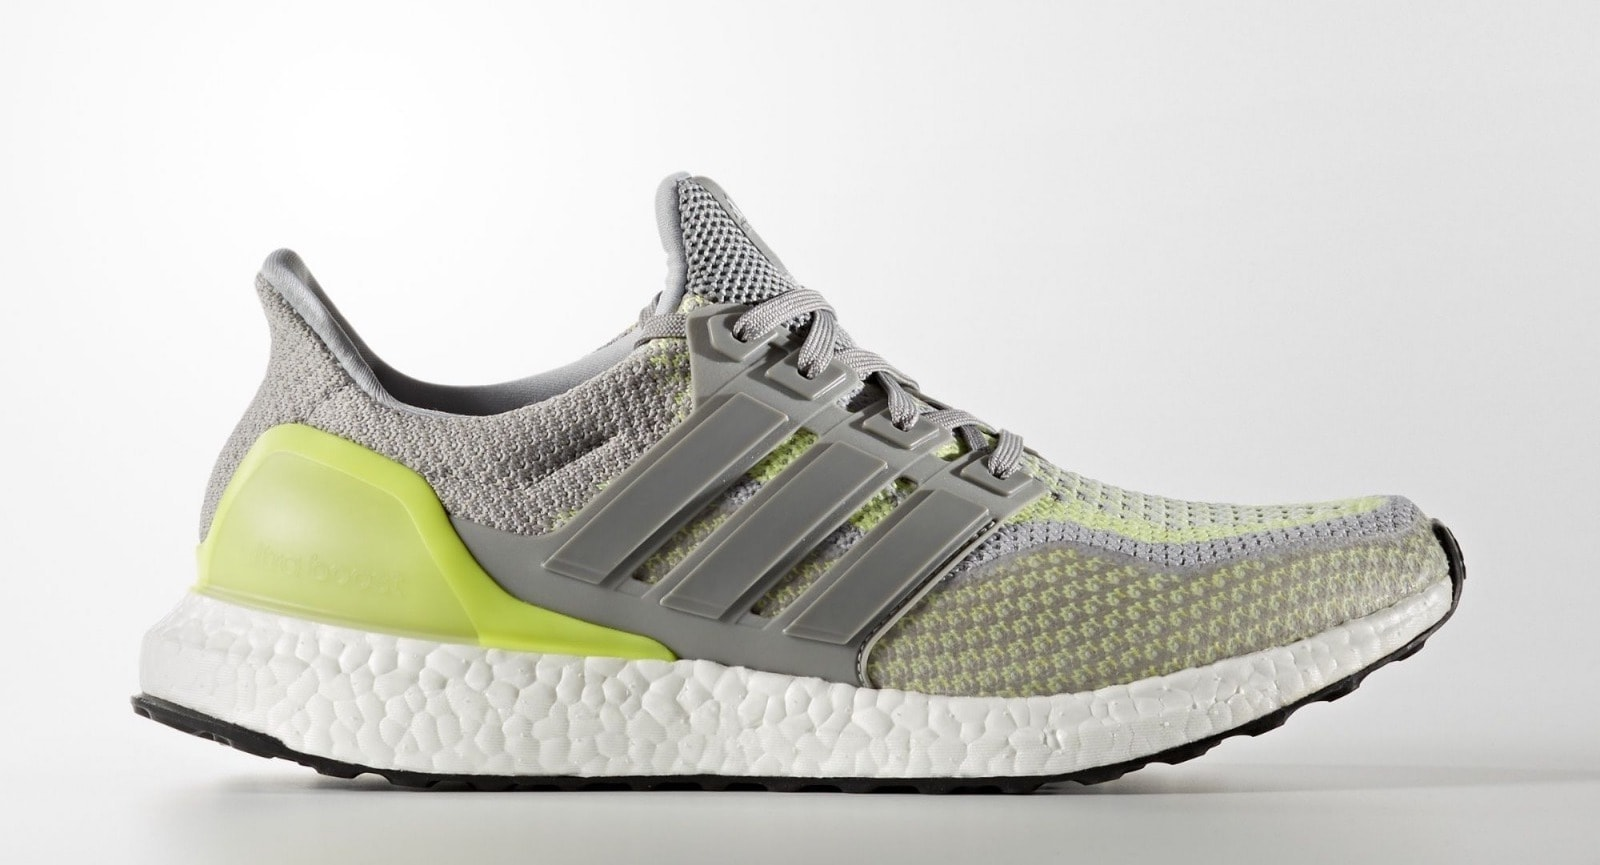 4a8aa09f676 The adidas Ultra Boost has grown to become one of the brand s most popular  franchises in recent years. Following the re-release of several Ultra Boost  2.0 ...